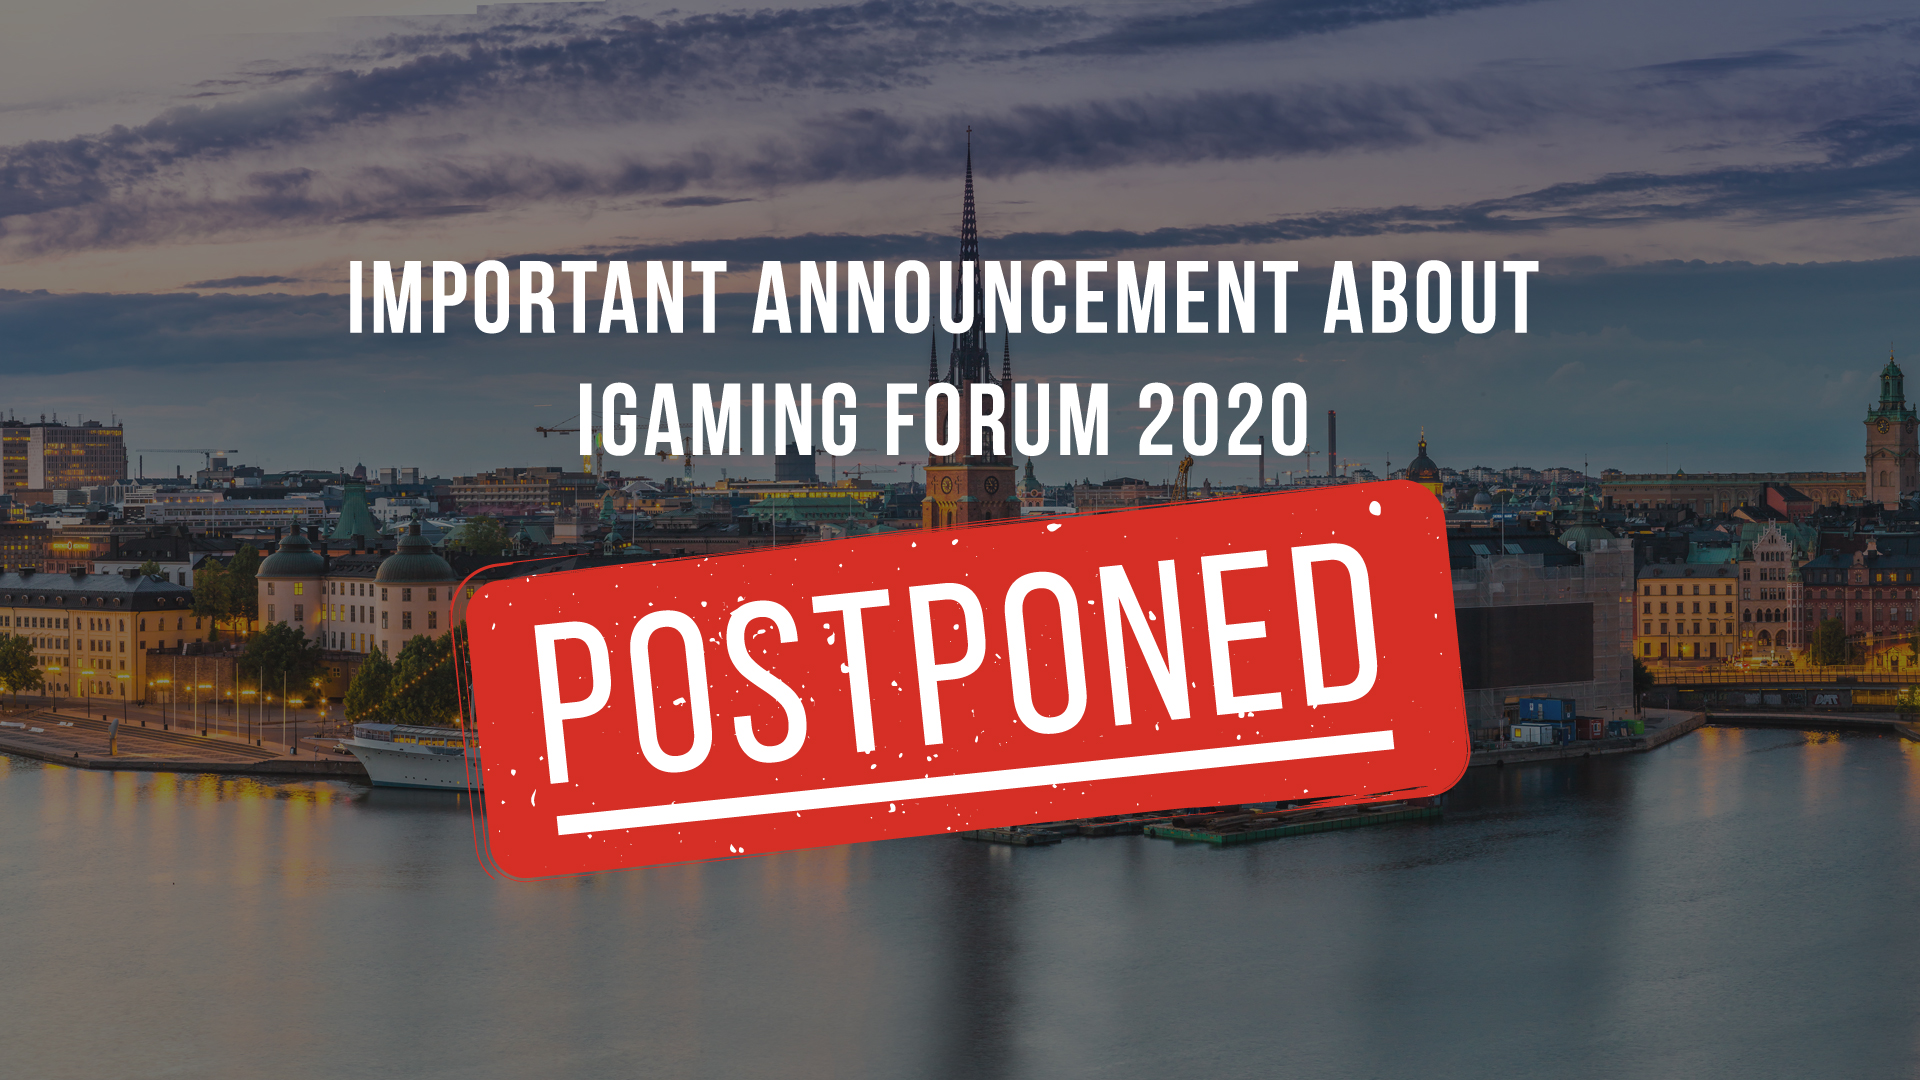 Important announcement about iGaming Forum 2020